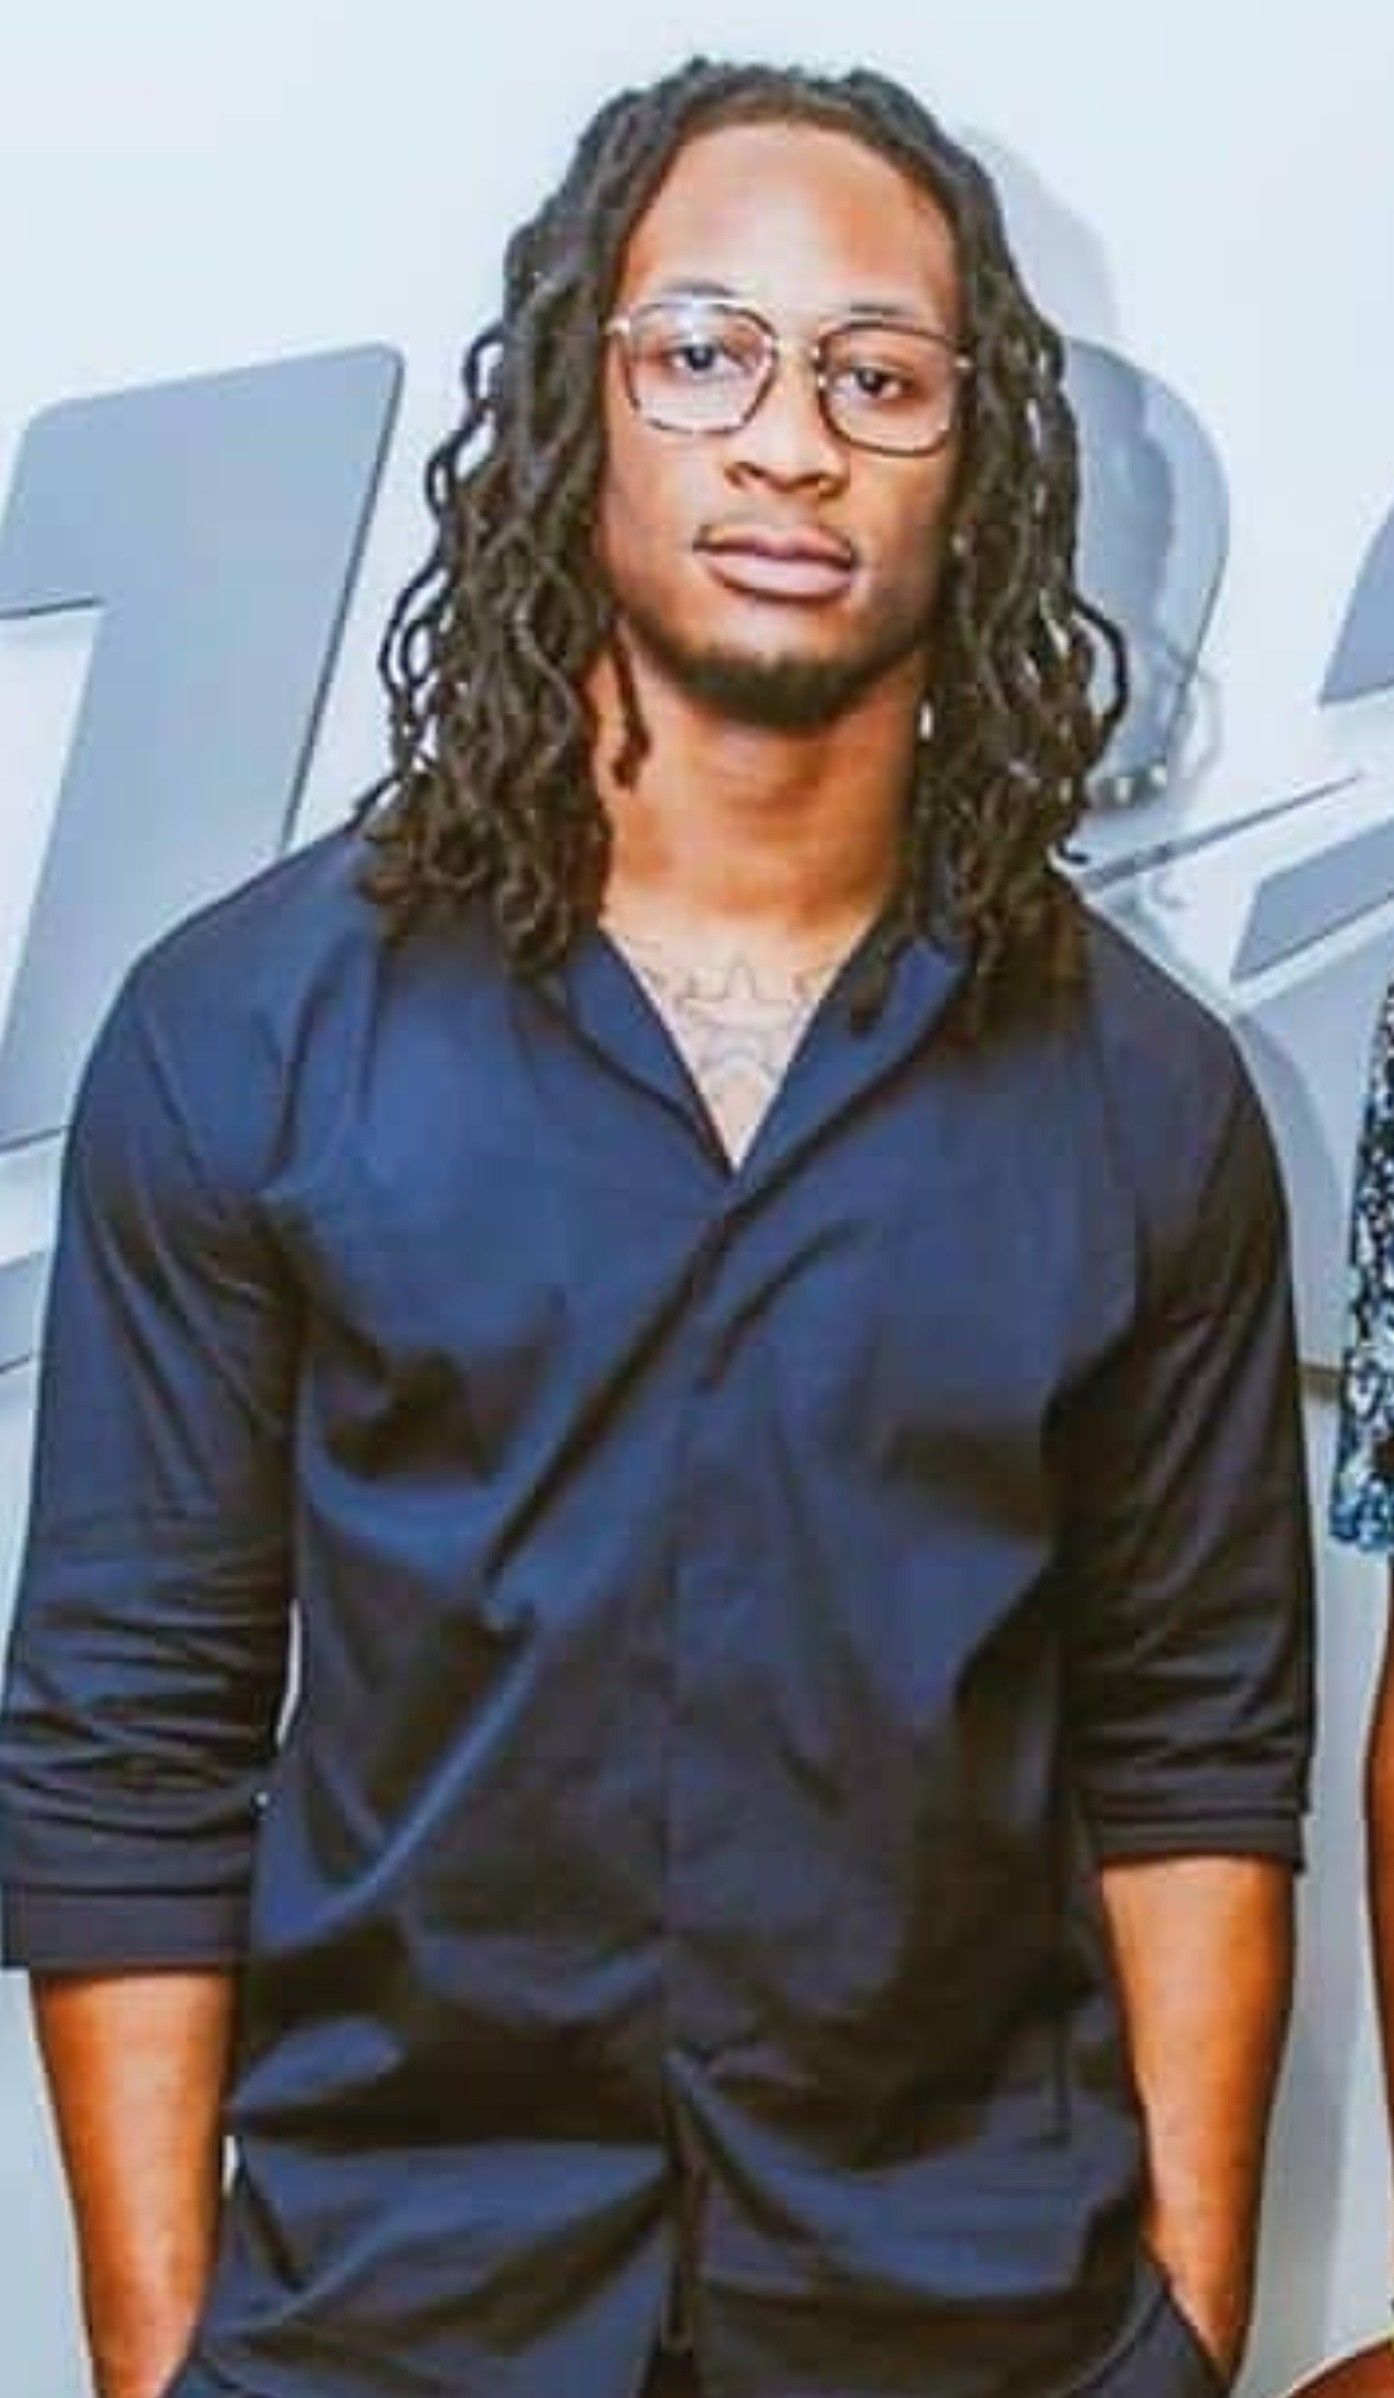 Pin By Jess On Todd Gurley In 2020 Todd Gurley Fashion Tops